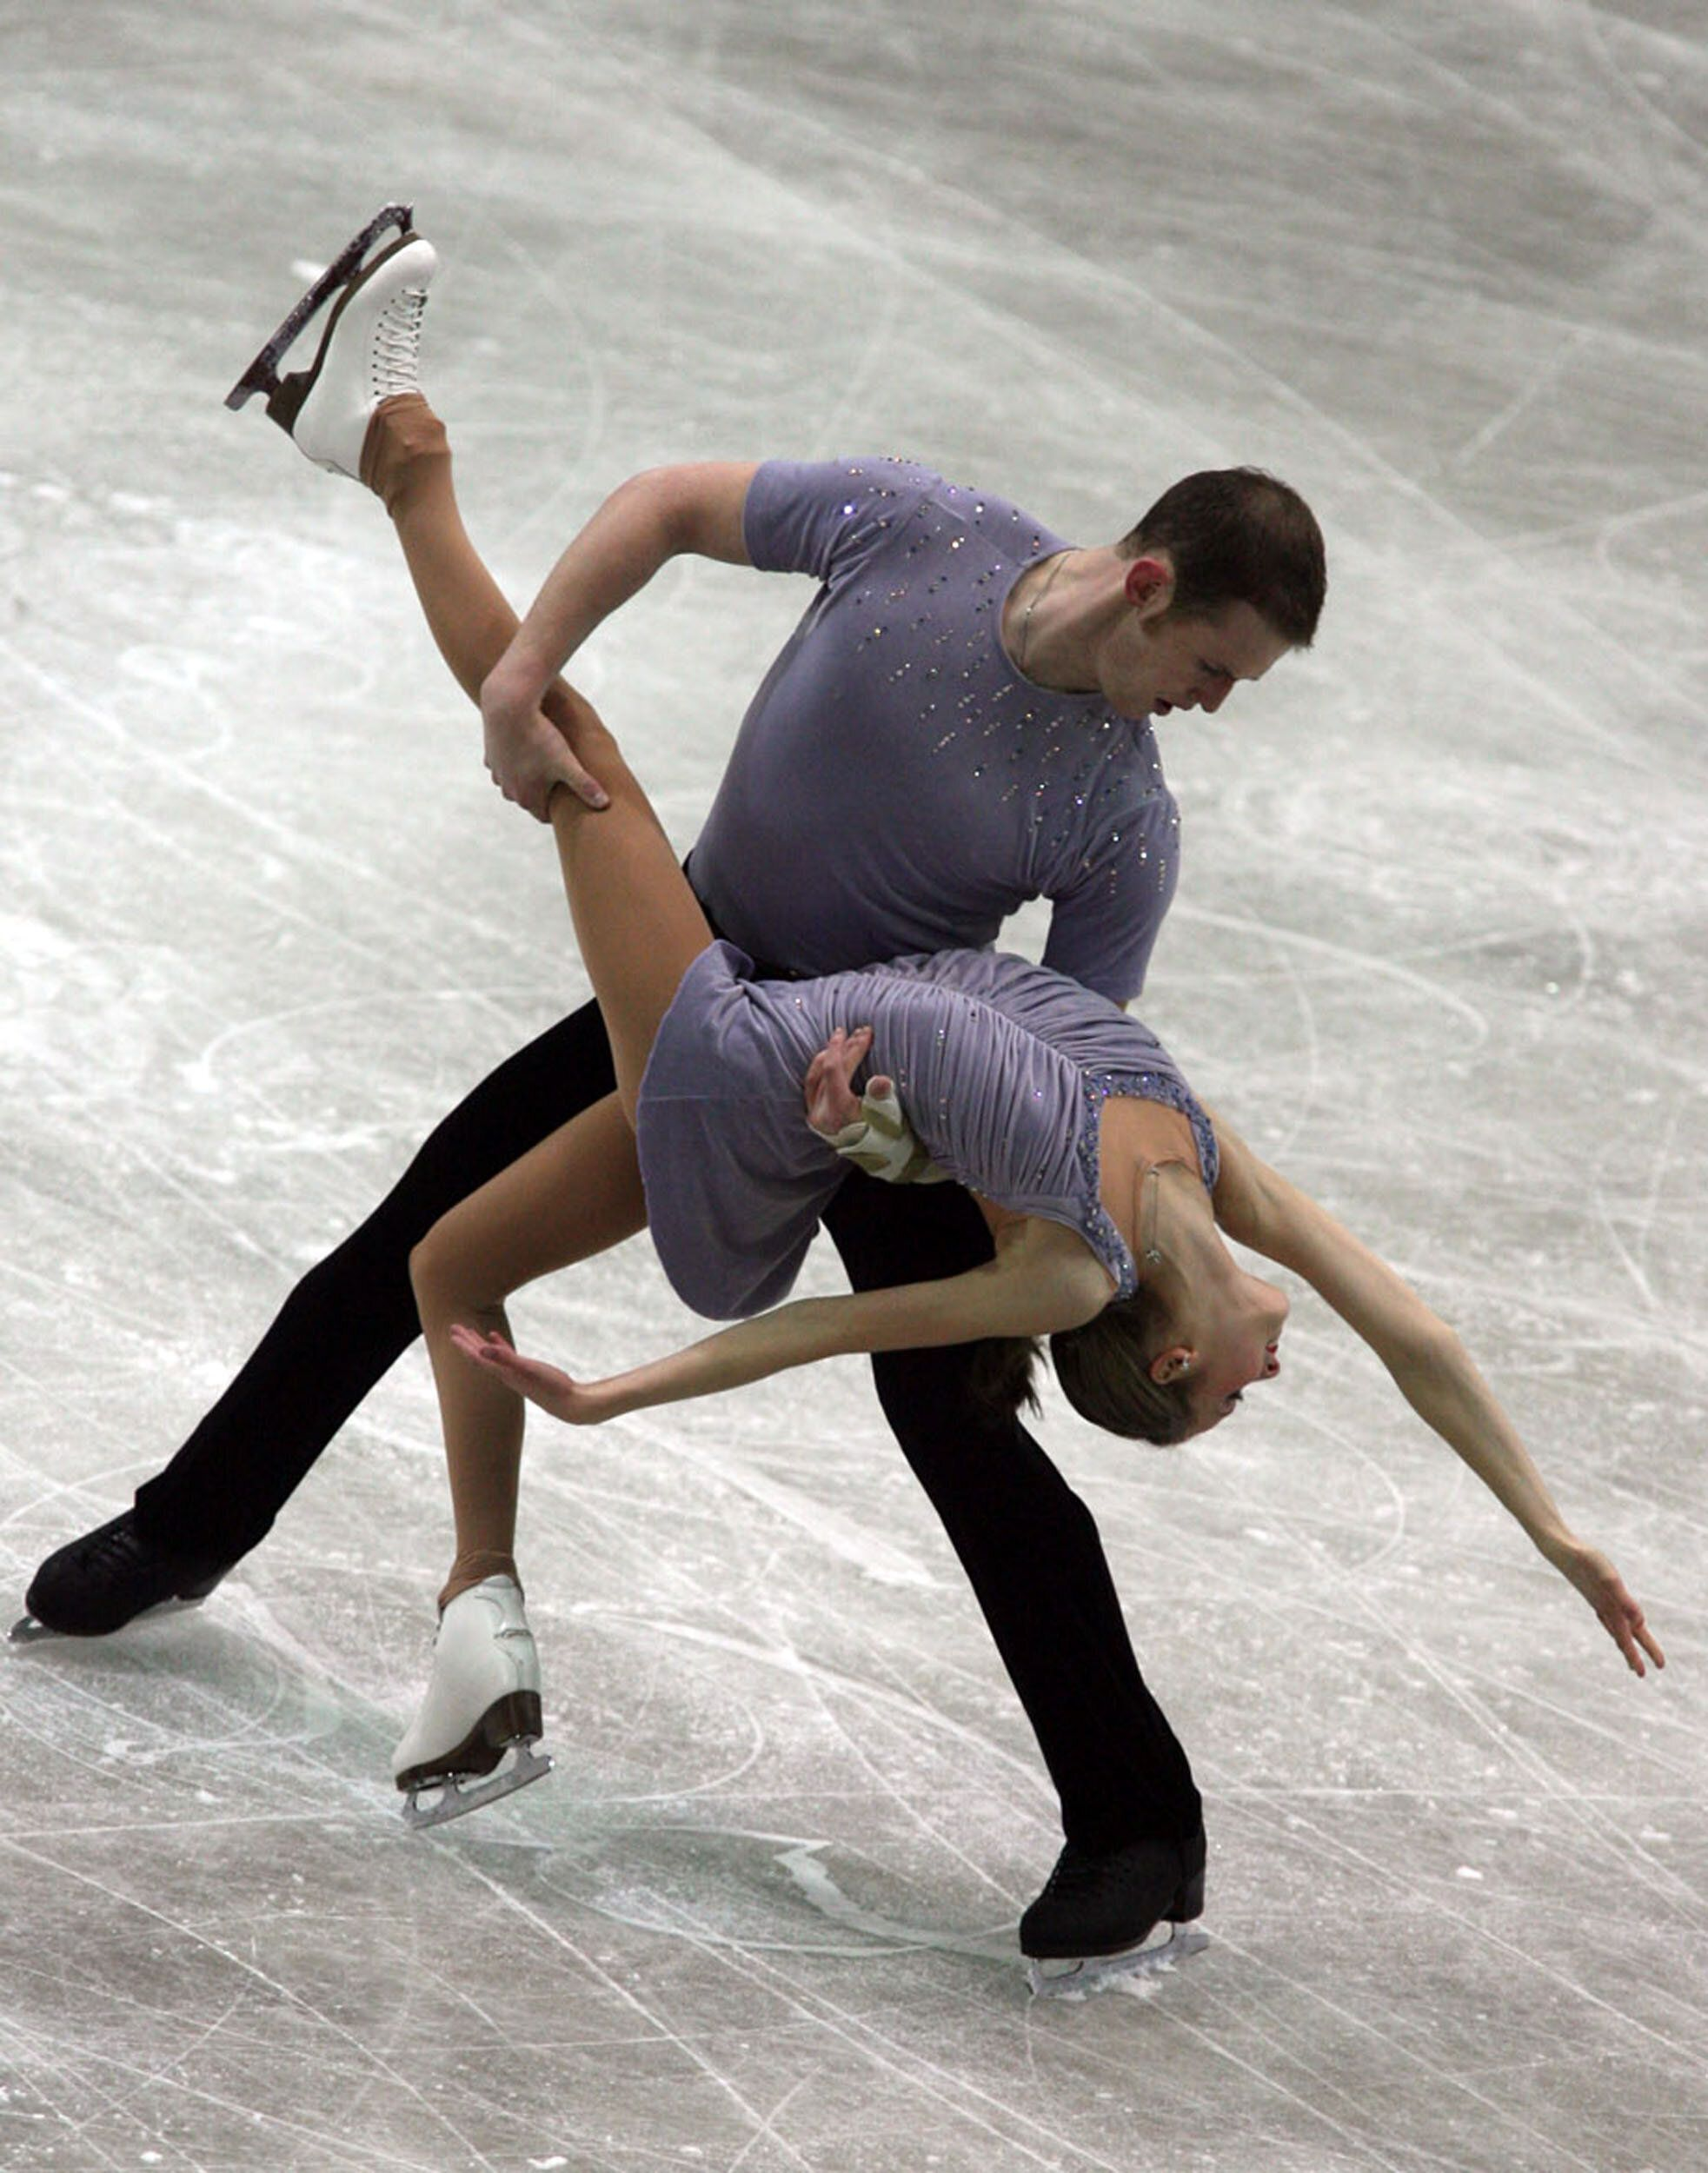 Bridget Namiotka, who skated with John Coughlin as a child from 2004 to 2007, has accused him of sexually abusing her and at